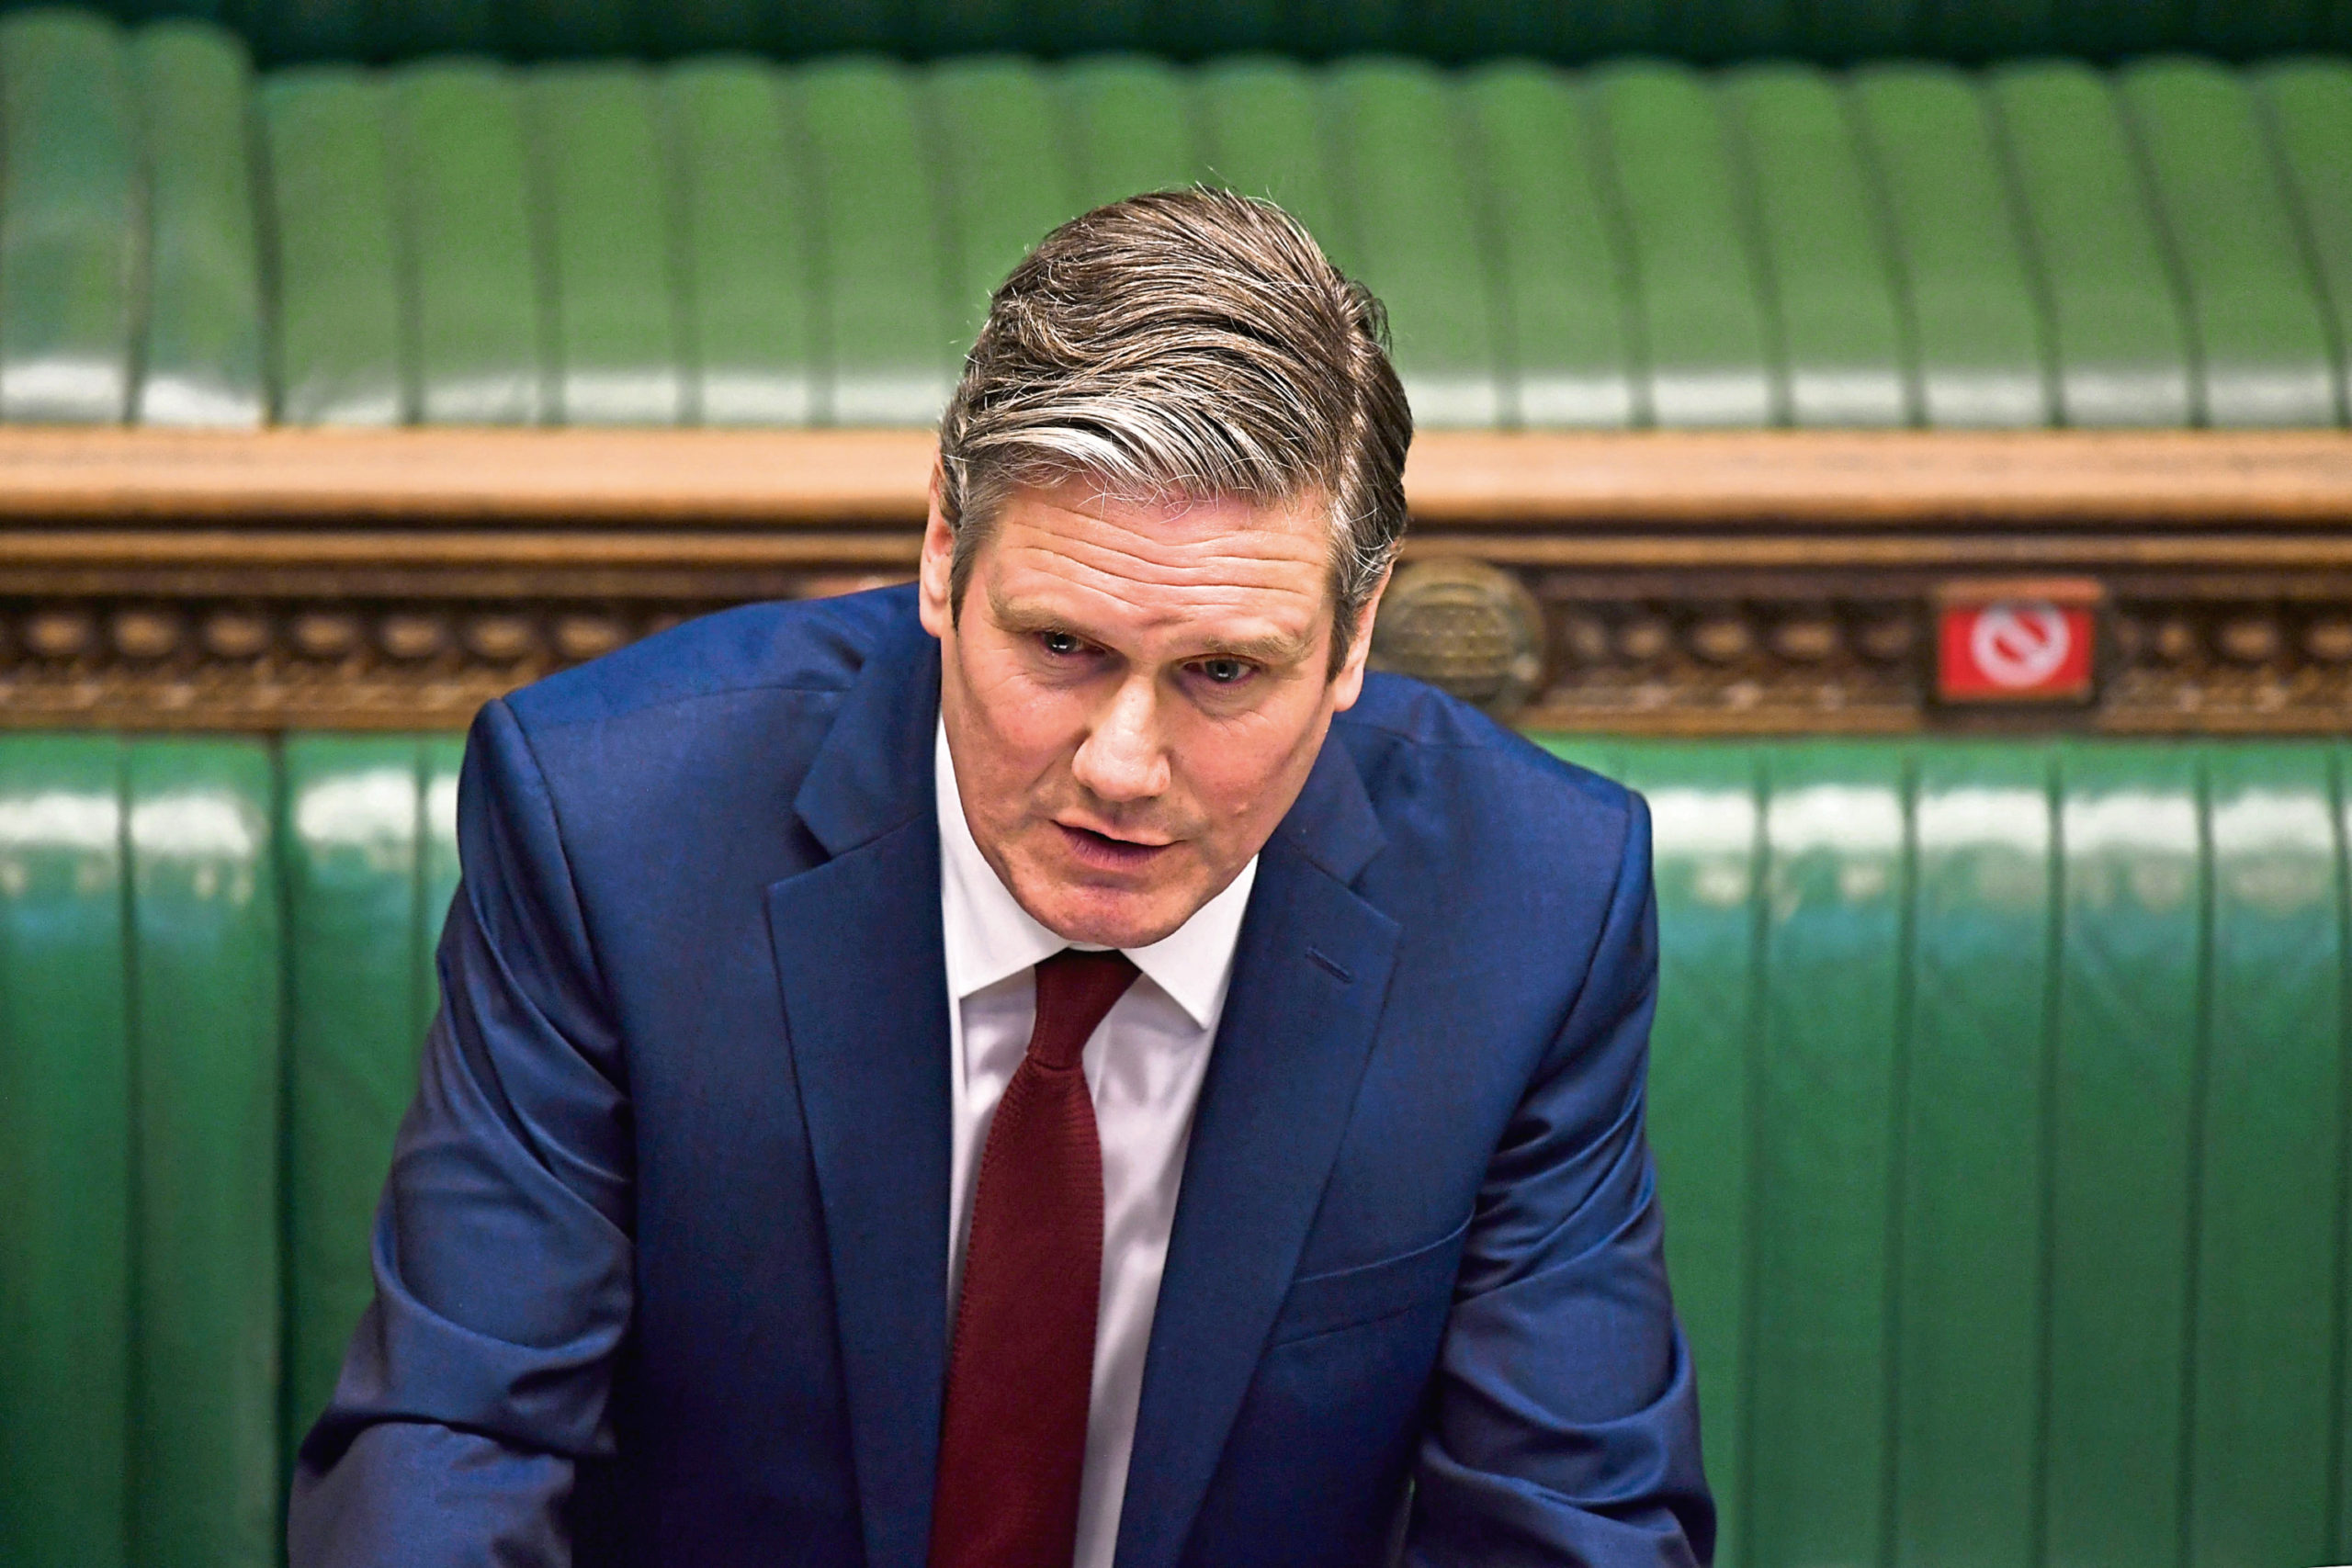 Sir Keir Starmer in parliament.